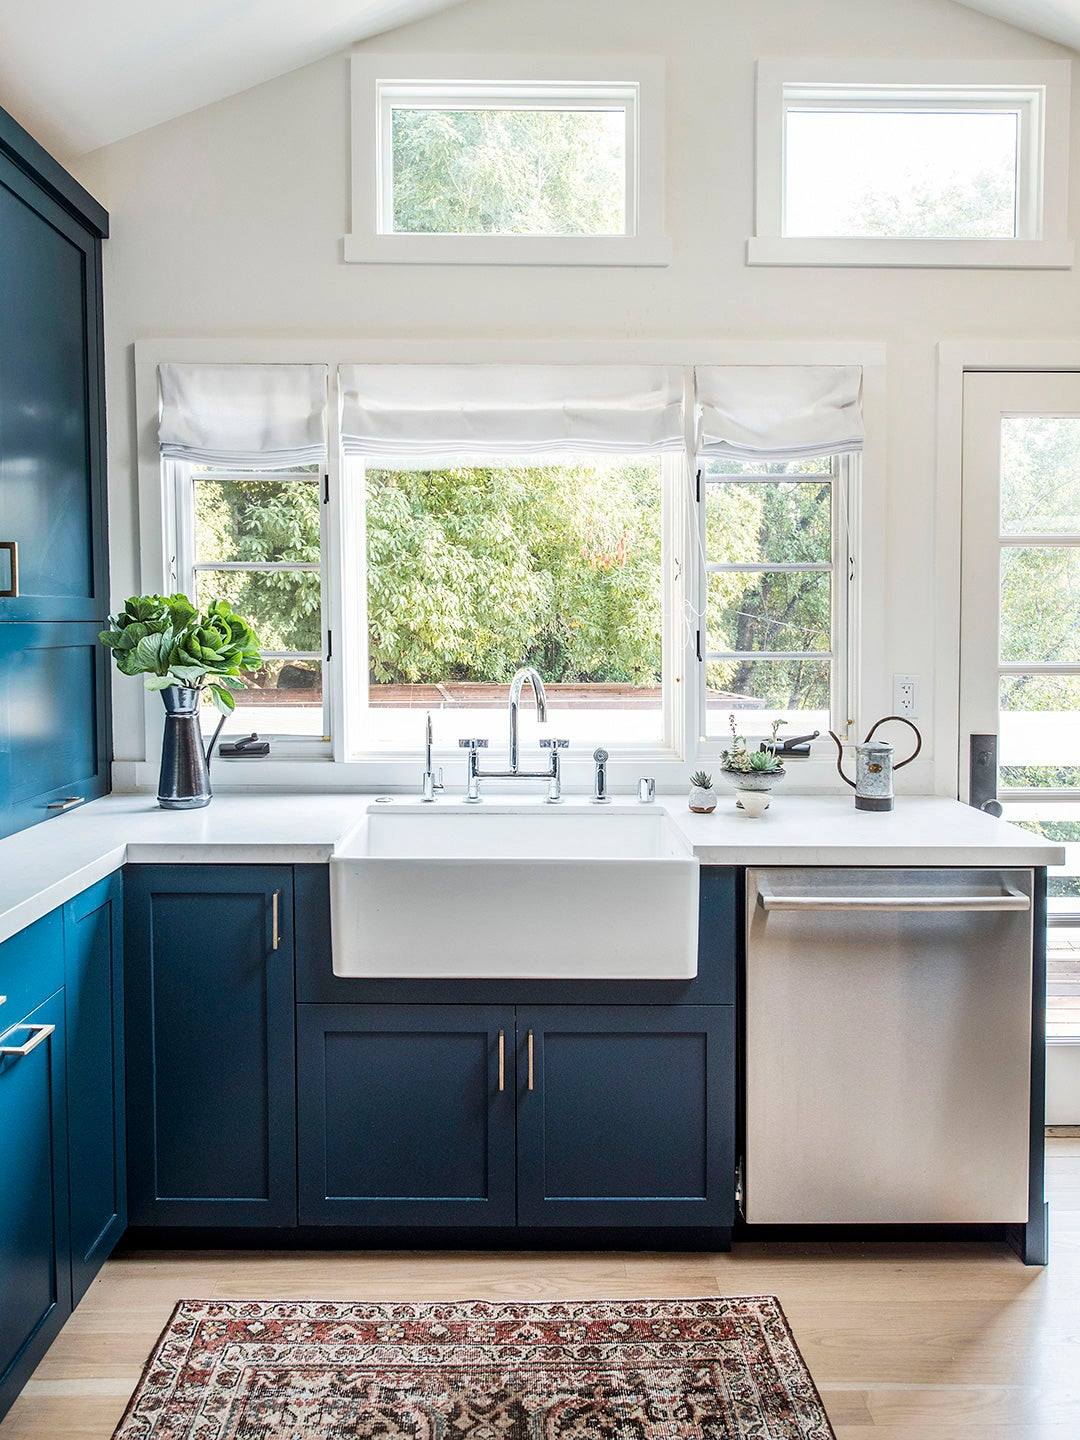 Navy Kitchen Cabinets Go Well With, Navy Blue Kitchen Cabinets With Butcher Block Countertops